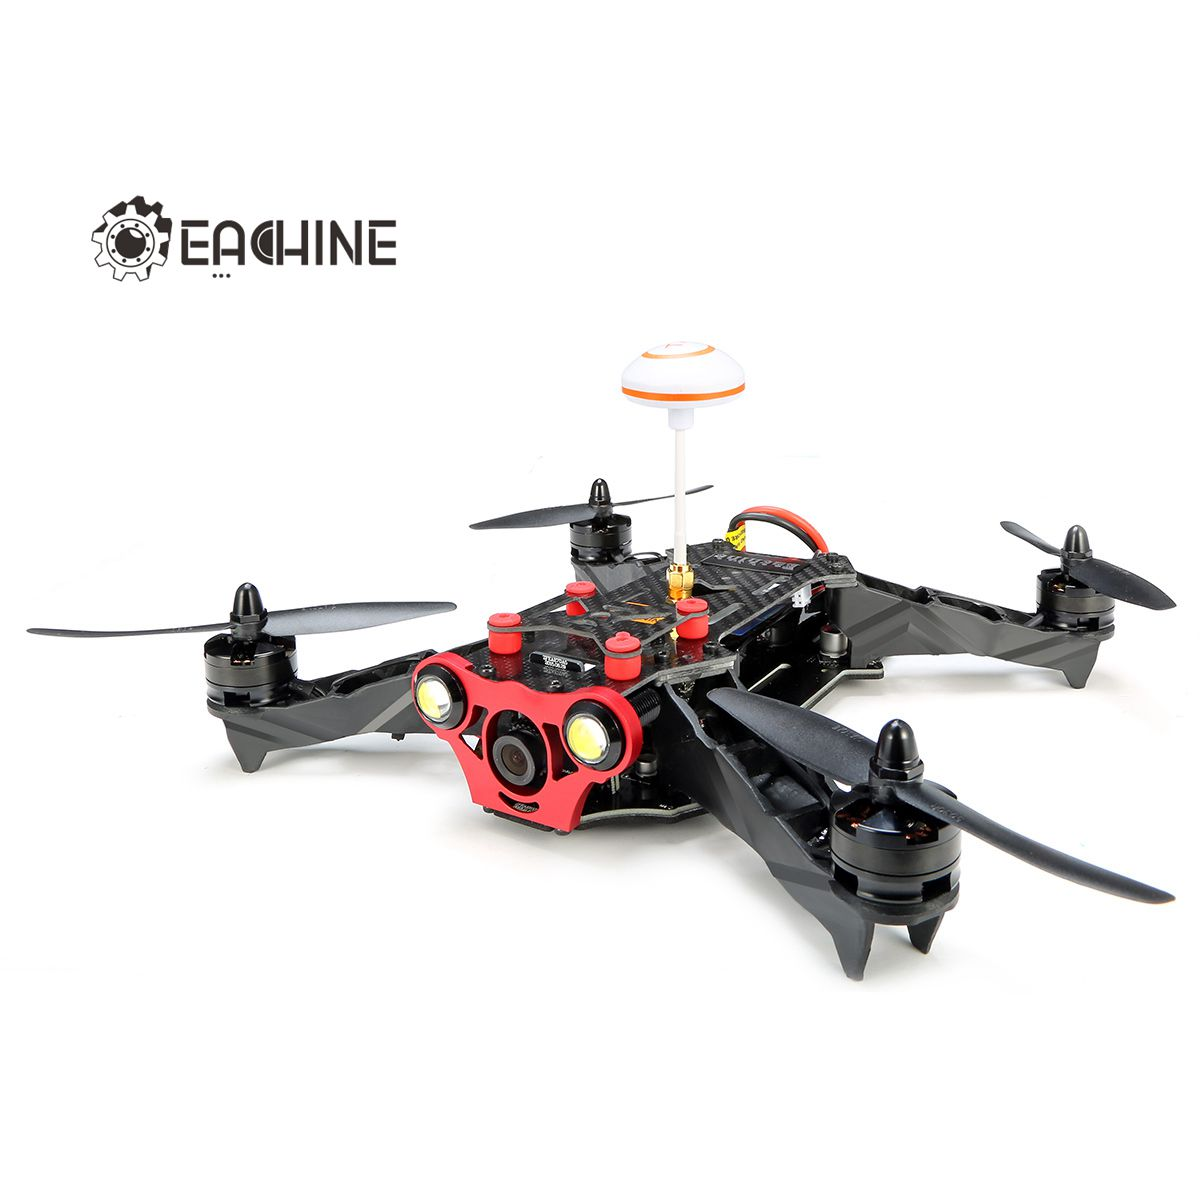 Фото Eachine Racer 250 FPV Drone Built in 5.8G Transmitter OSD With HD Camera ARF Version